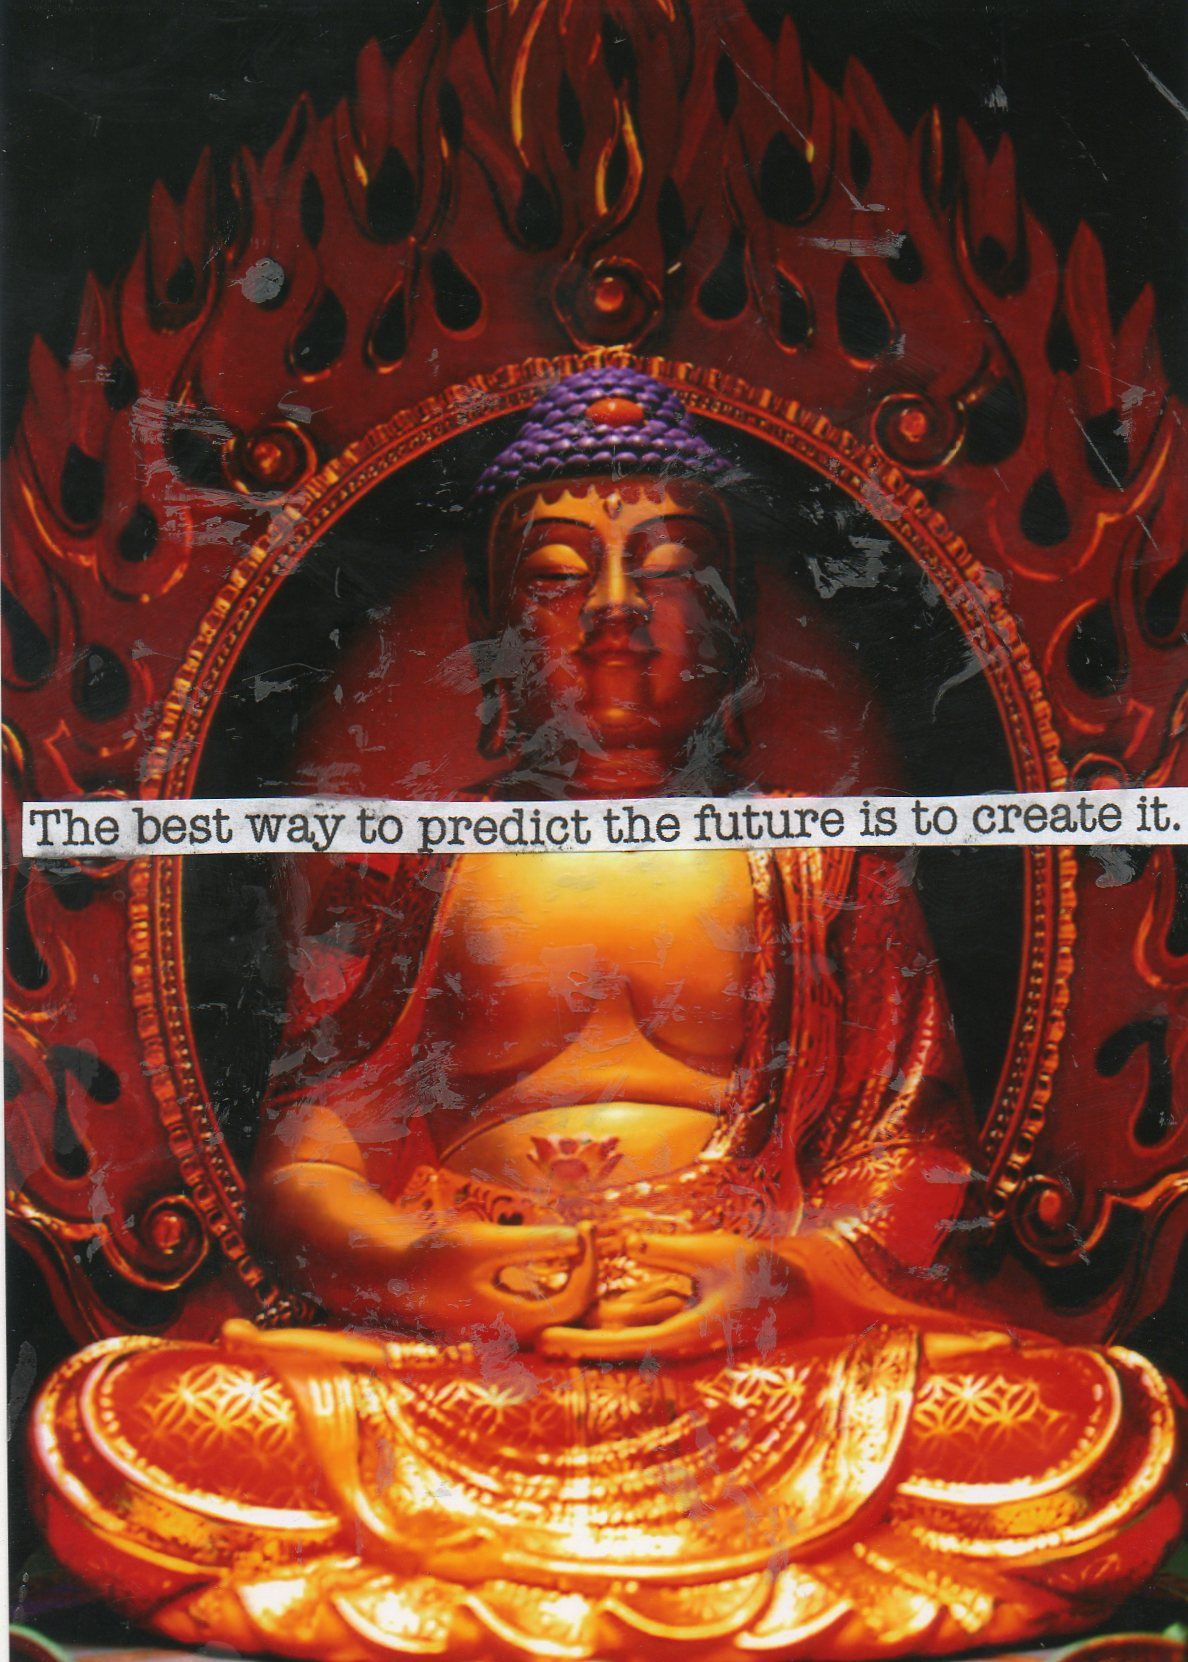 The Best Way To Predict The Future Is To Create